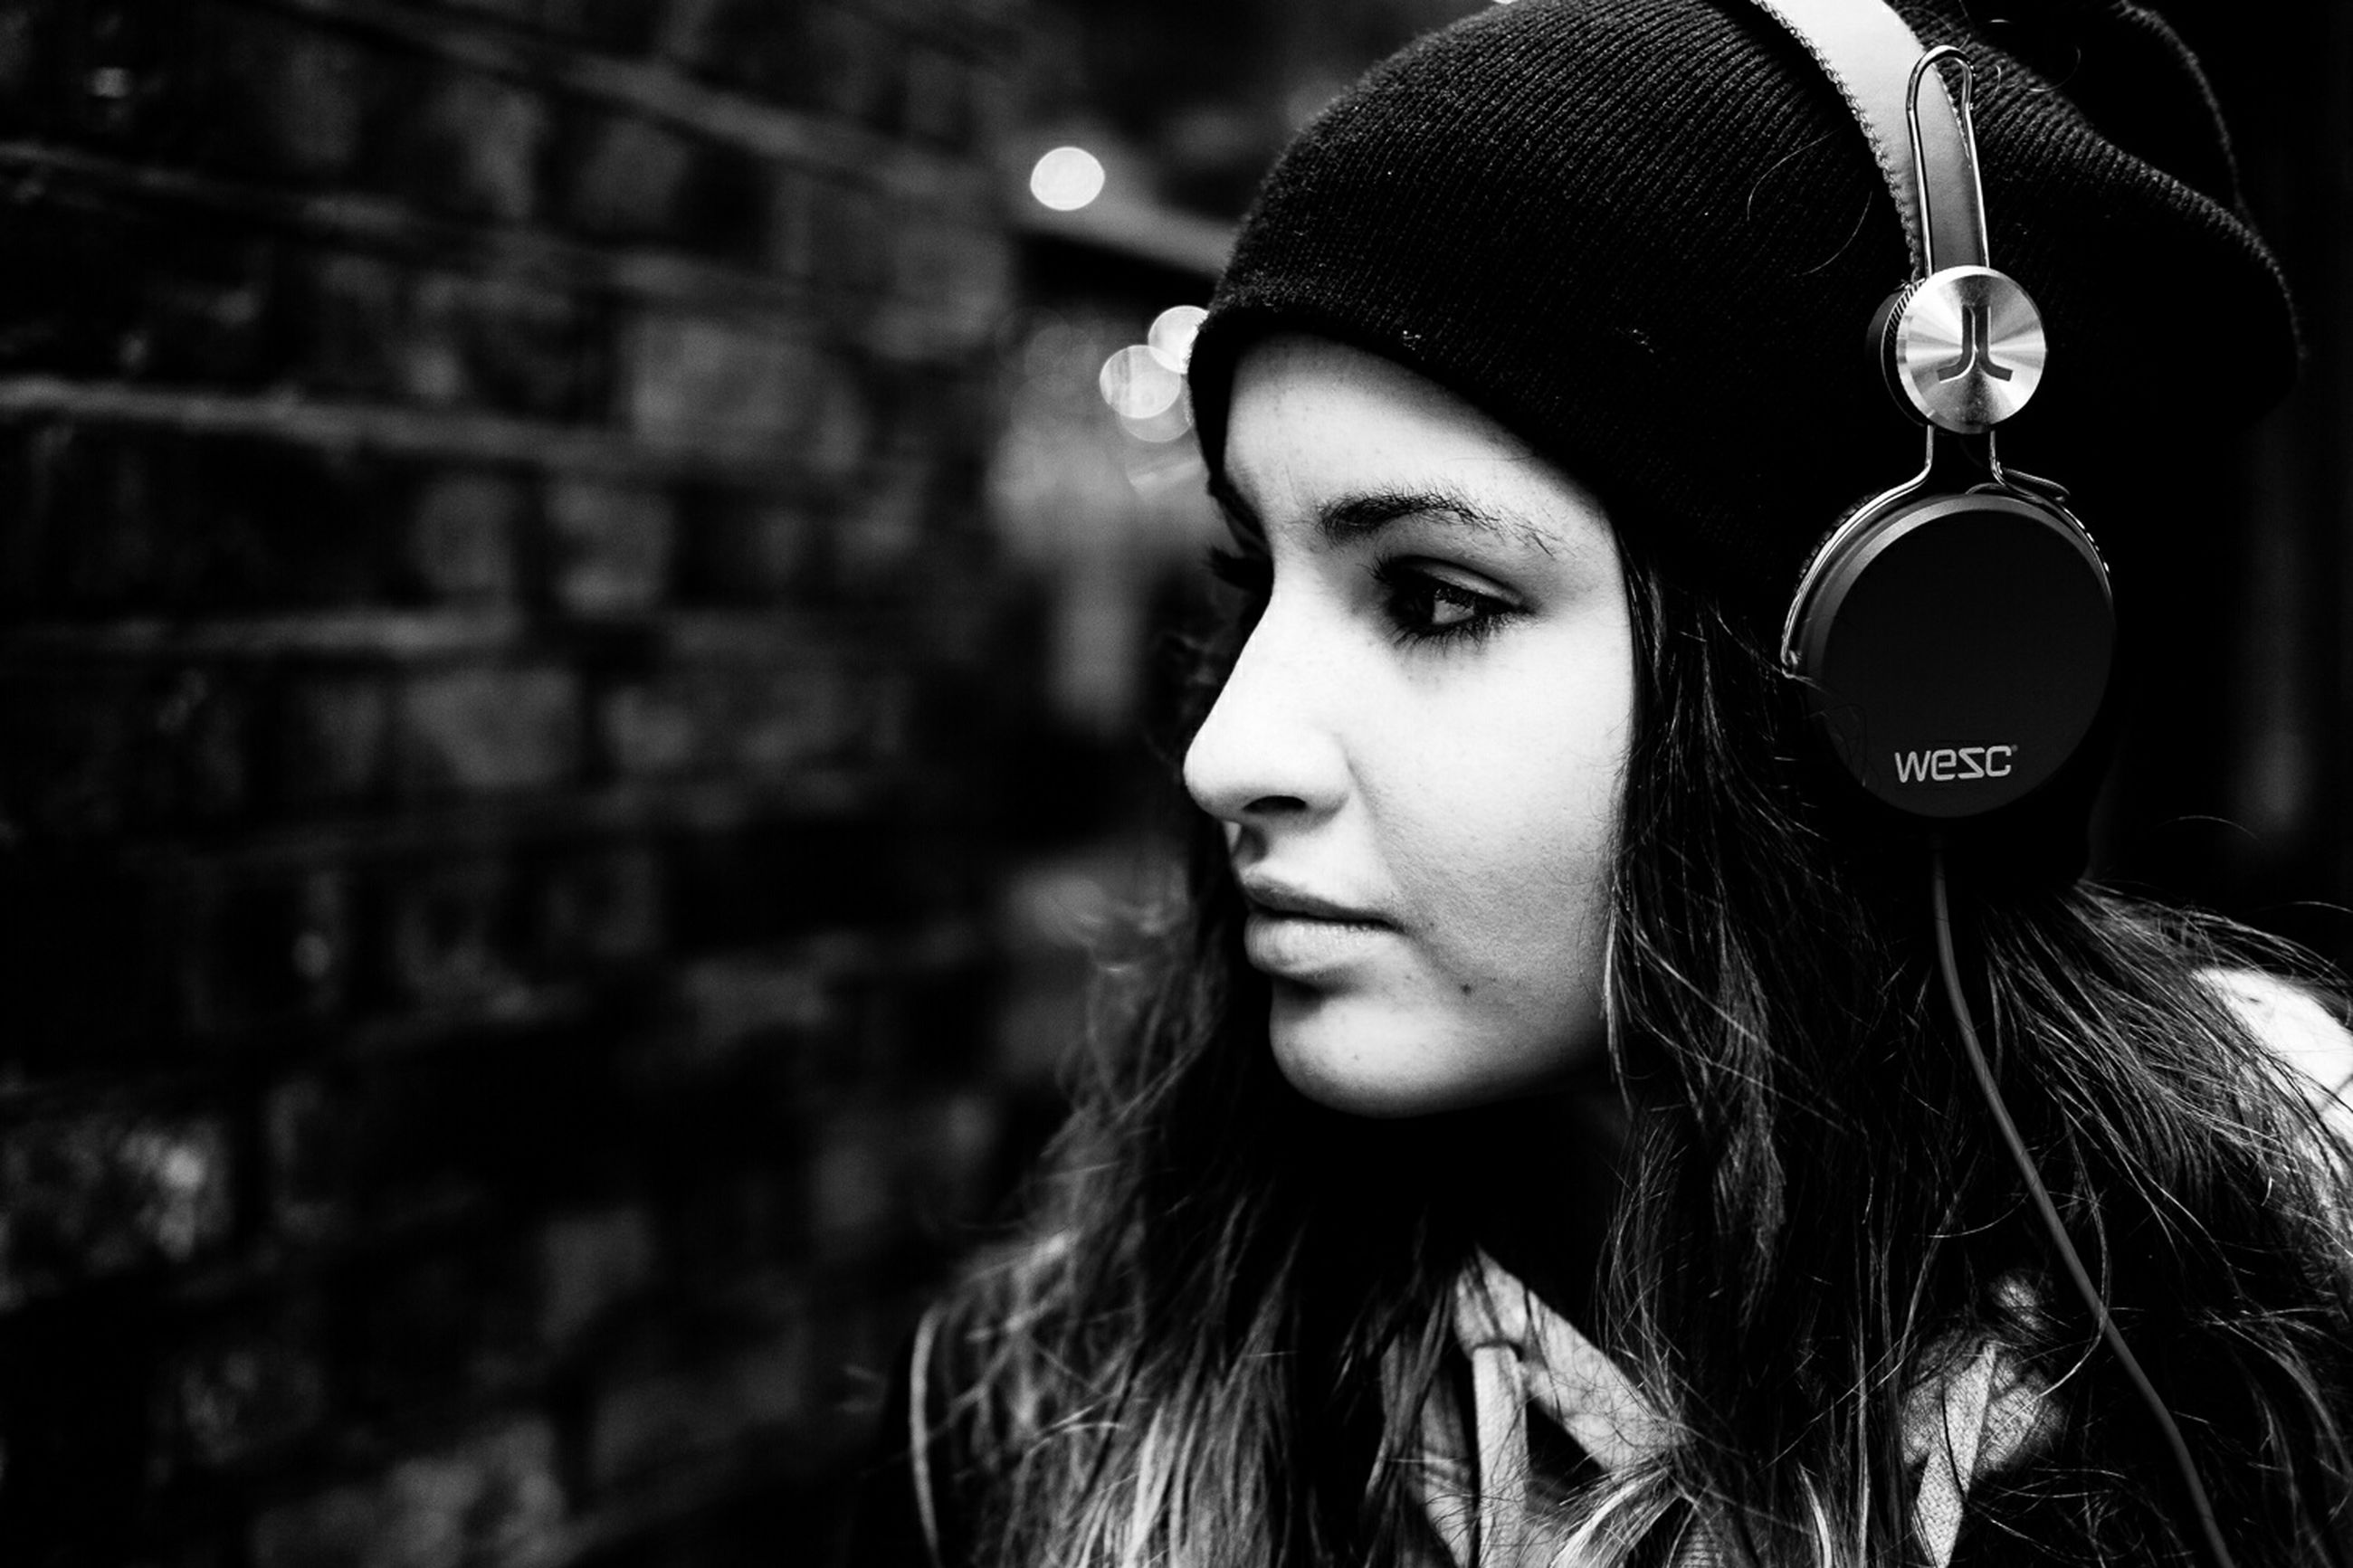 young adult, headshot, person, lifestyles, young women, front view, long hair, leisure activity, focus on foreground, portrait, close-up, human face, head and shoulders, looking at camera, contemplation, casual clothing